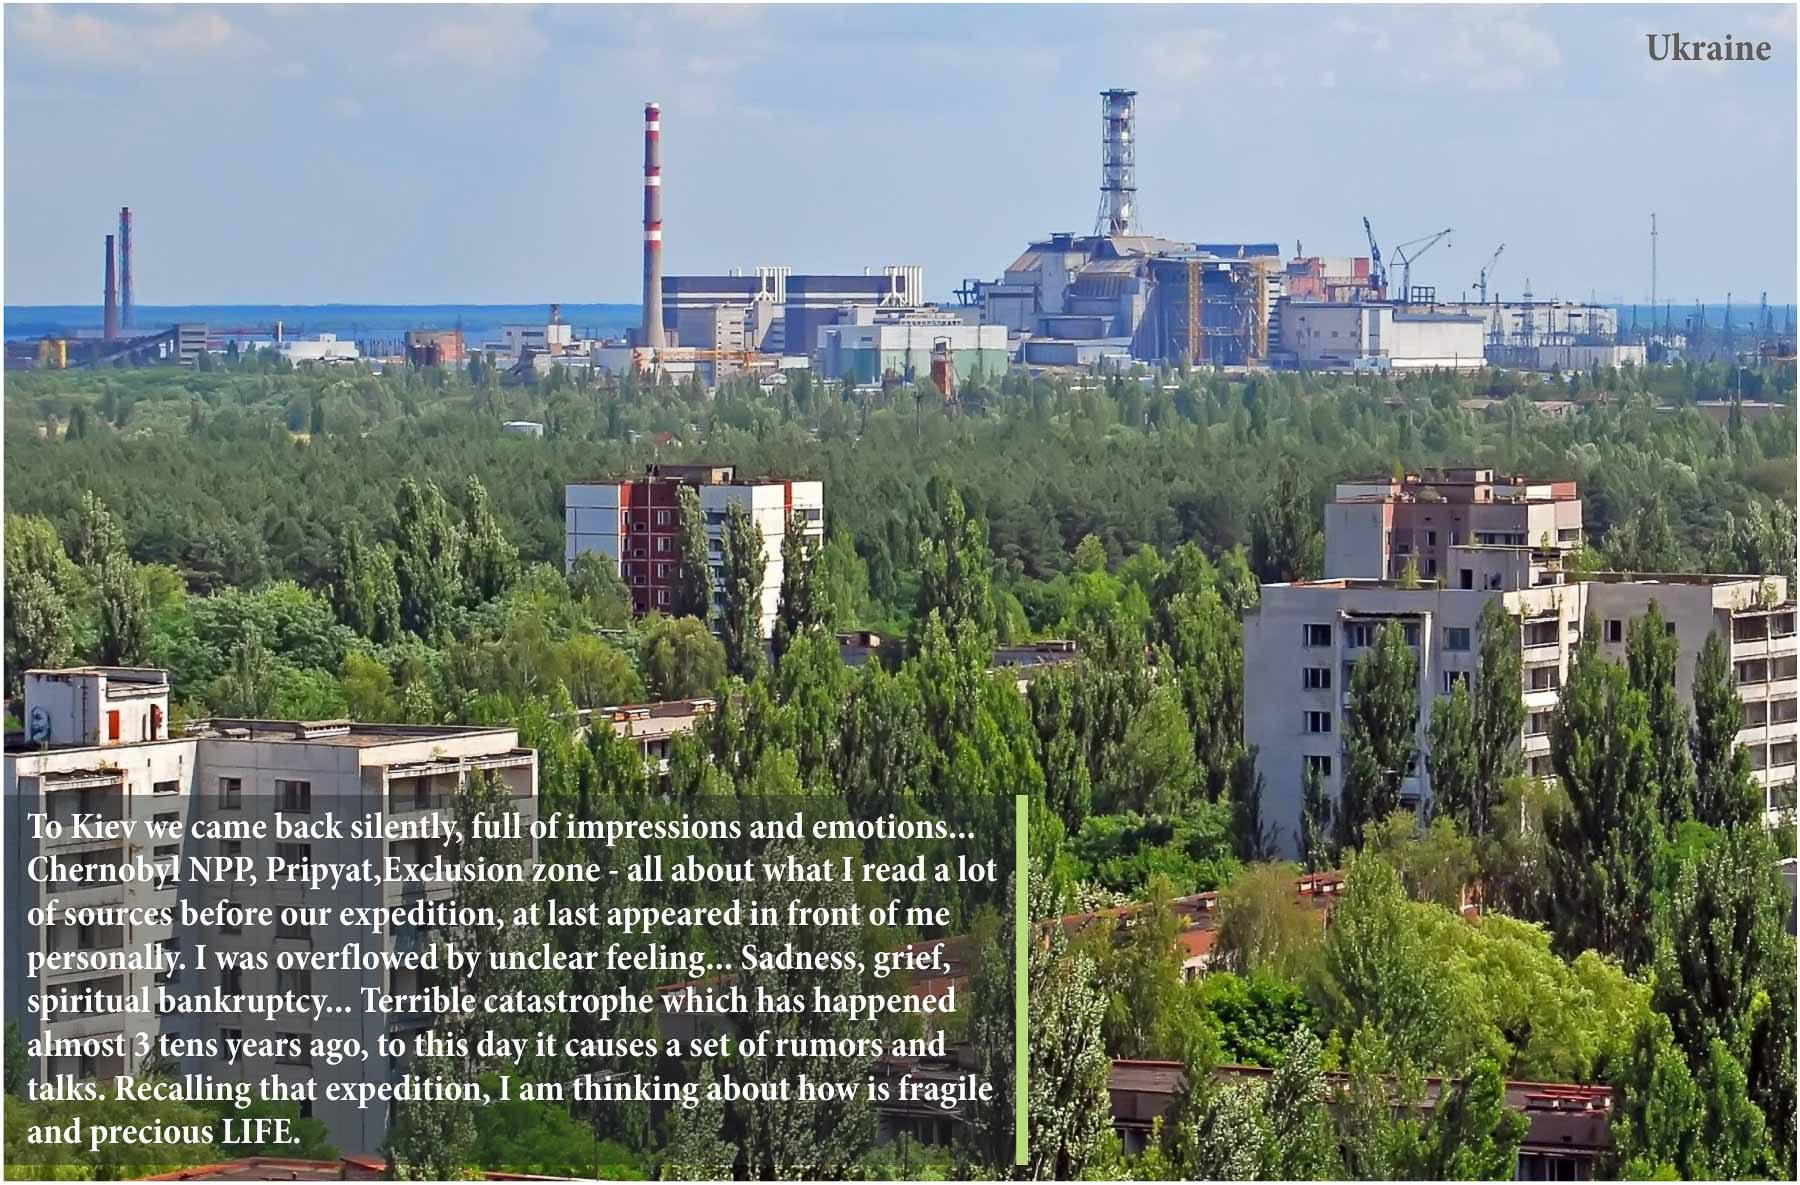 chernobyl disaster essay View and download chernobyl essays examples also discover topics, titles, outlines, thesis statements, and conclusions for your chernobyl essay.